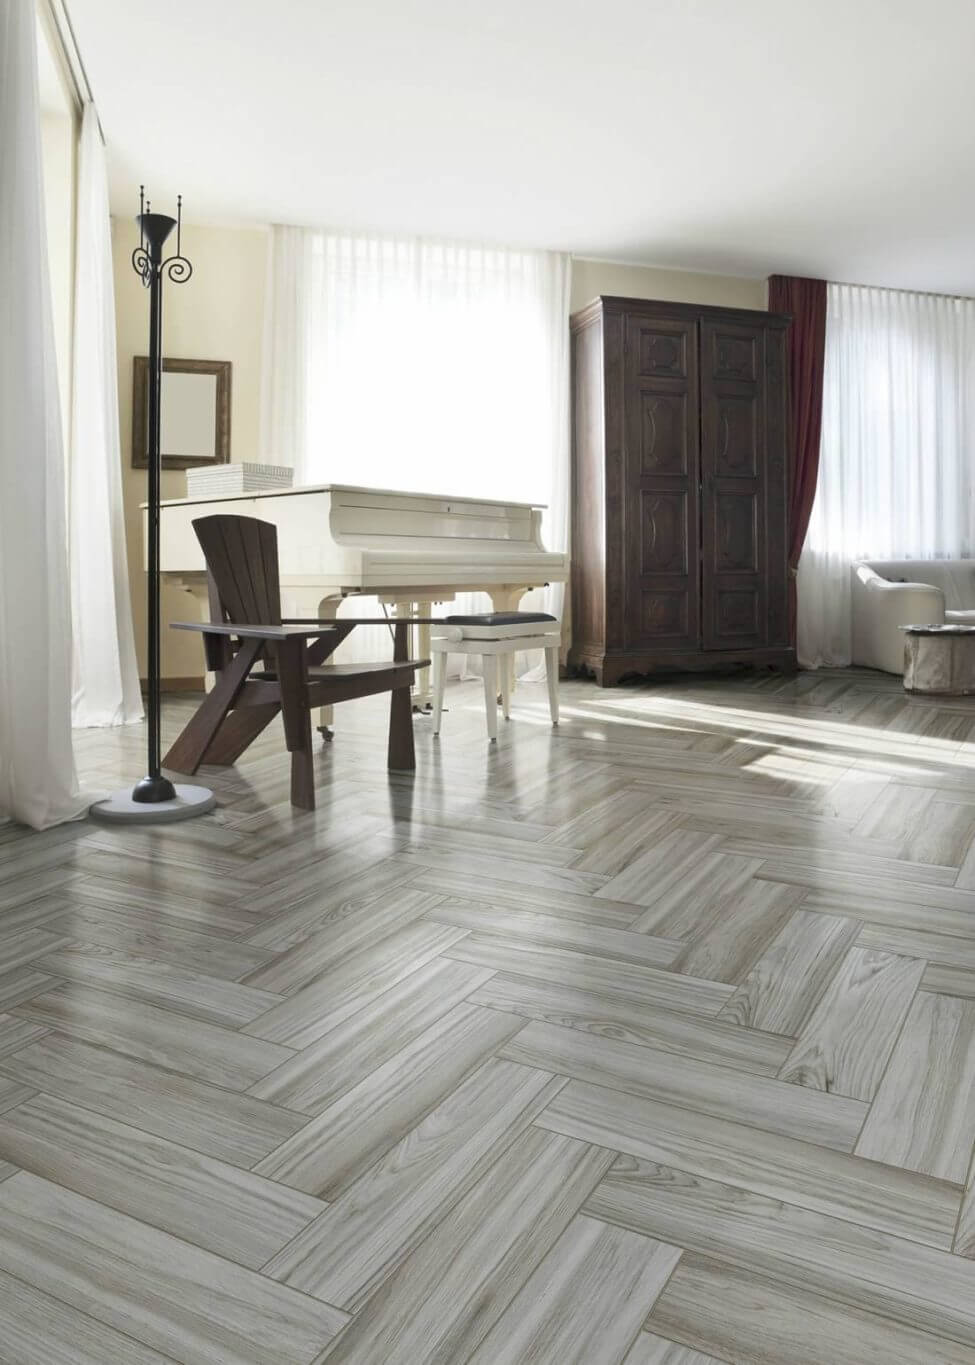 Herringbone Wood Look Tile Floor Why Tile